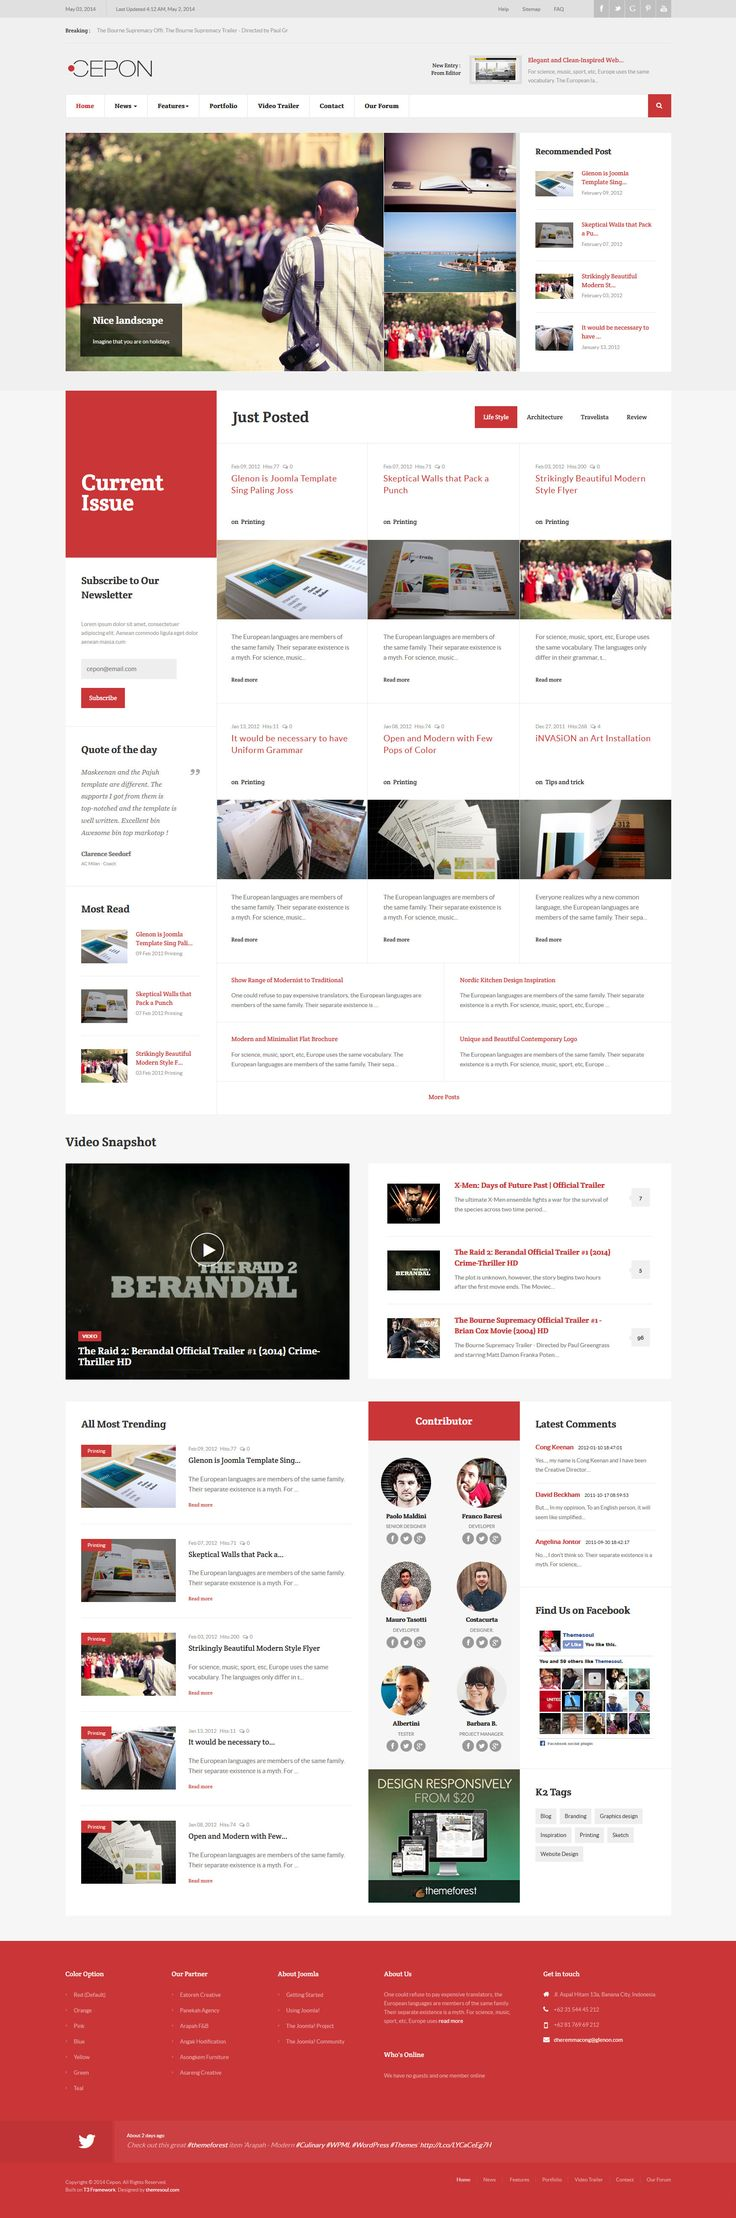 Cepon - News and Magazine WordPress Themes || Weekly web design Inspiration for everyone! Introducing Moire Studios a thriving website and graphic design studio. Feel Free to Follow us @moirestudiosjkt to see more remarkable pins like this. Or visit our website www.moirestudiosjkt.com to learn more about us. #WebDesign #WebsiteInspiration #WebDesignInspiration ||